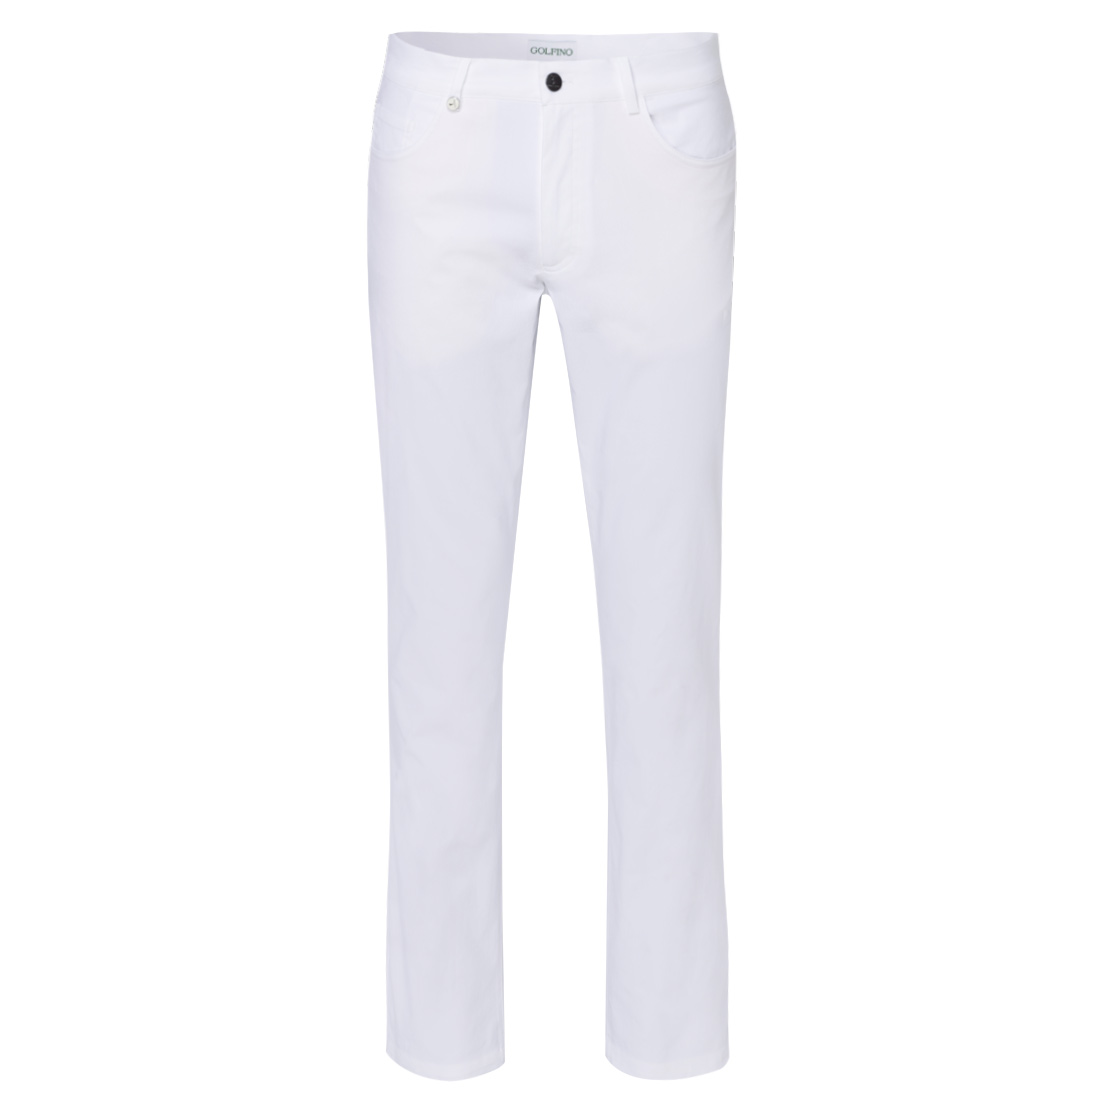 5-pocket stretch performance golf trousers in slim fit with UV protection